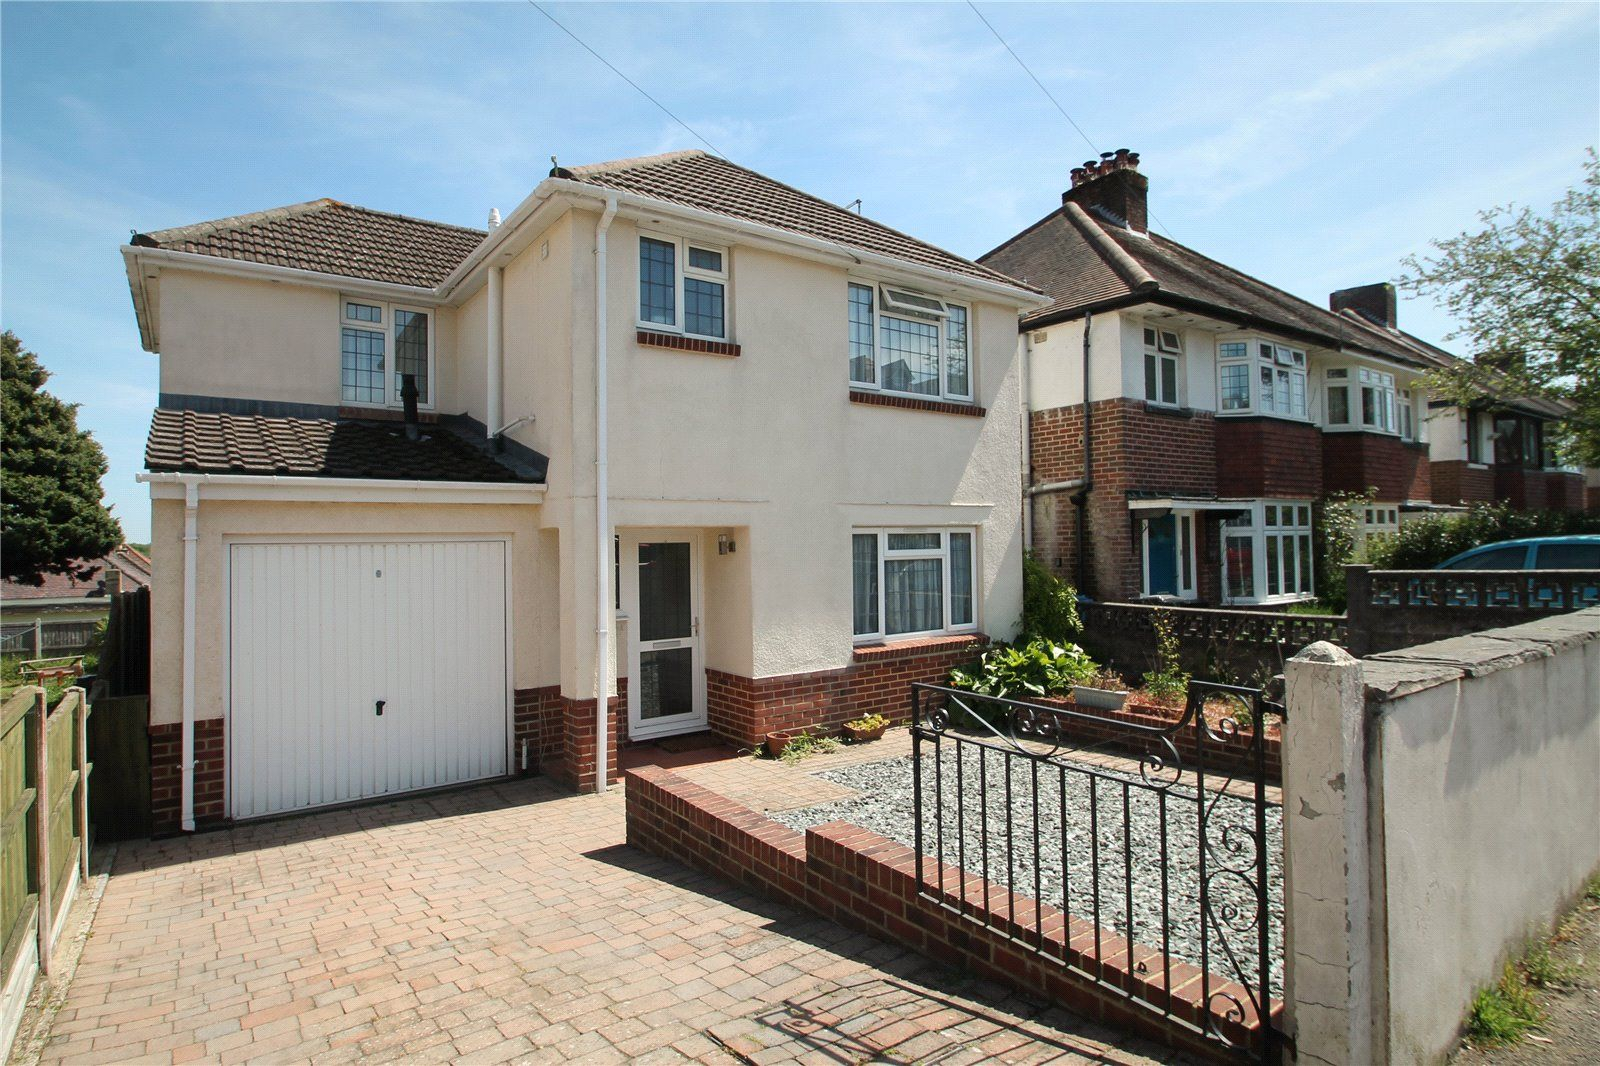 A well presented substantial four bedroom detached family sized house with good size garden, garage and parking. In Courthill & Baden Powell catchment and close to Ashley Cross and Parkstone train station.